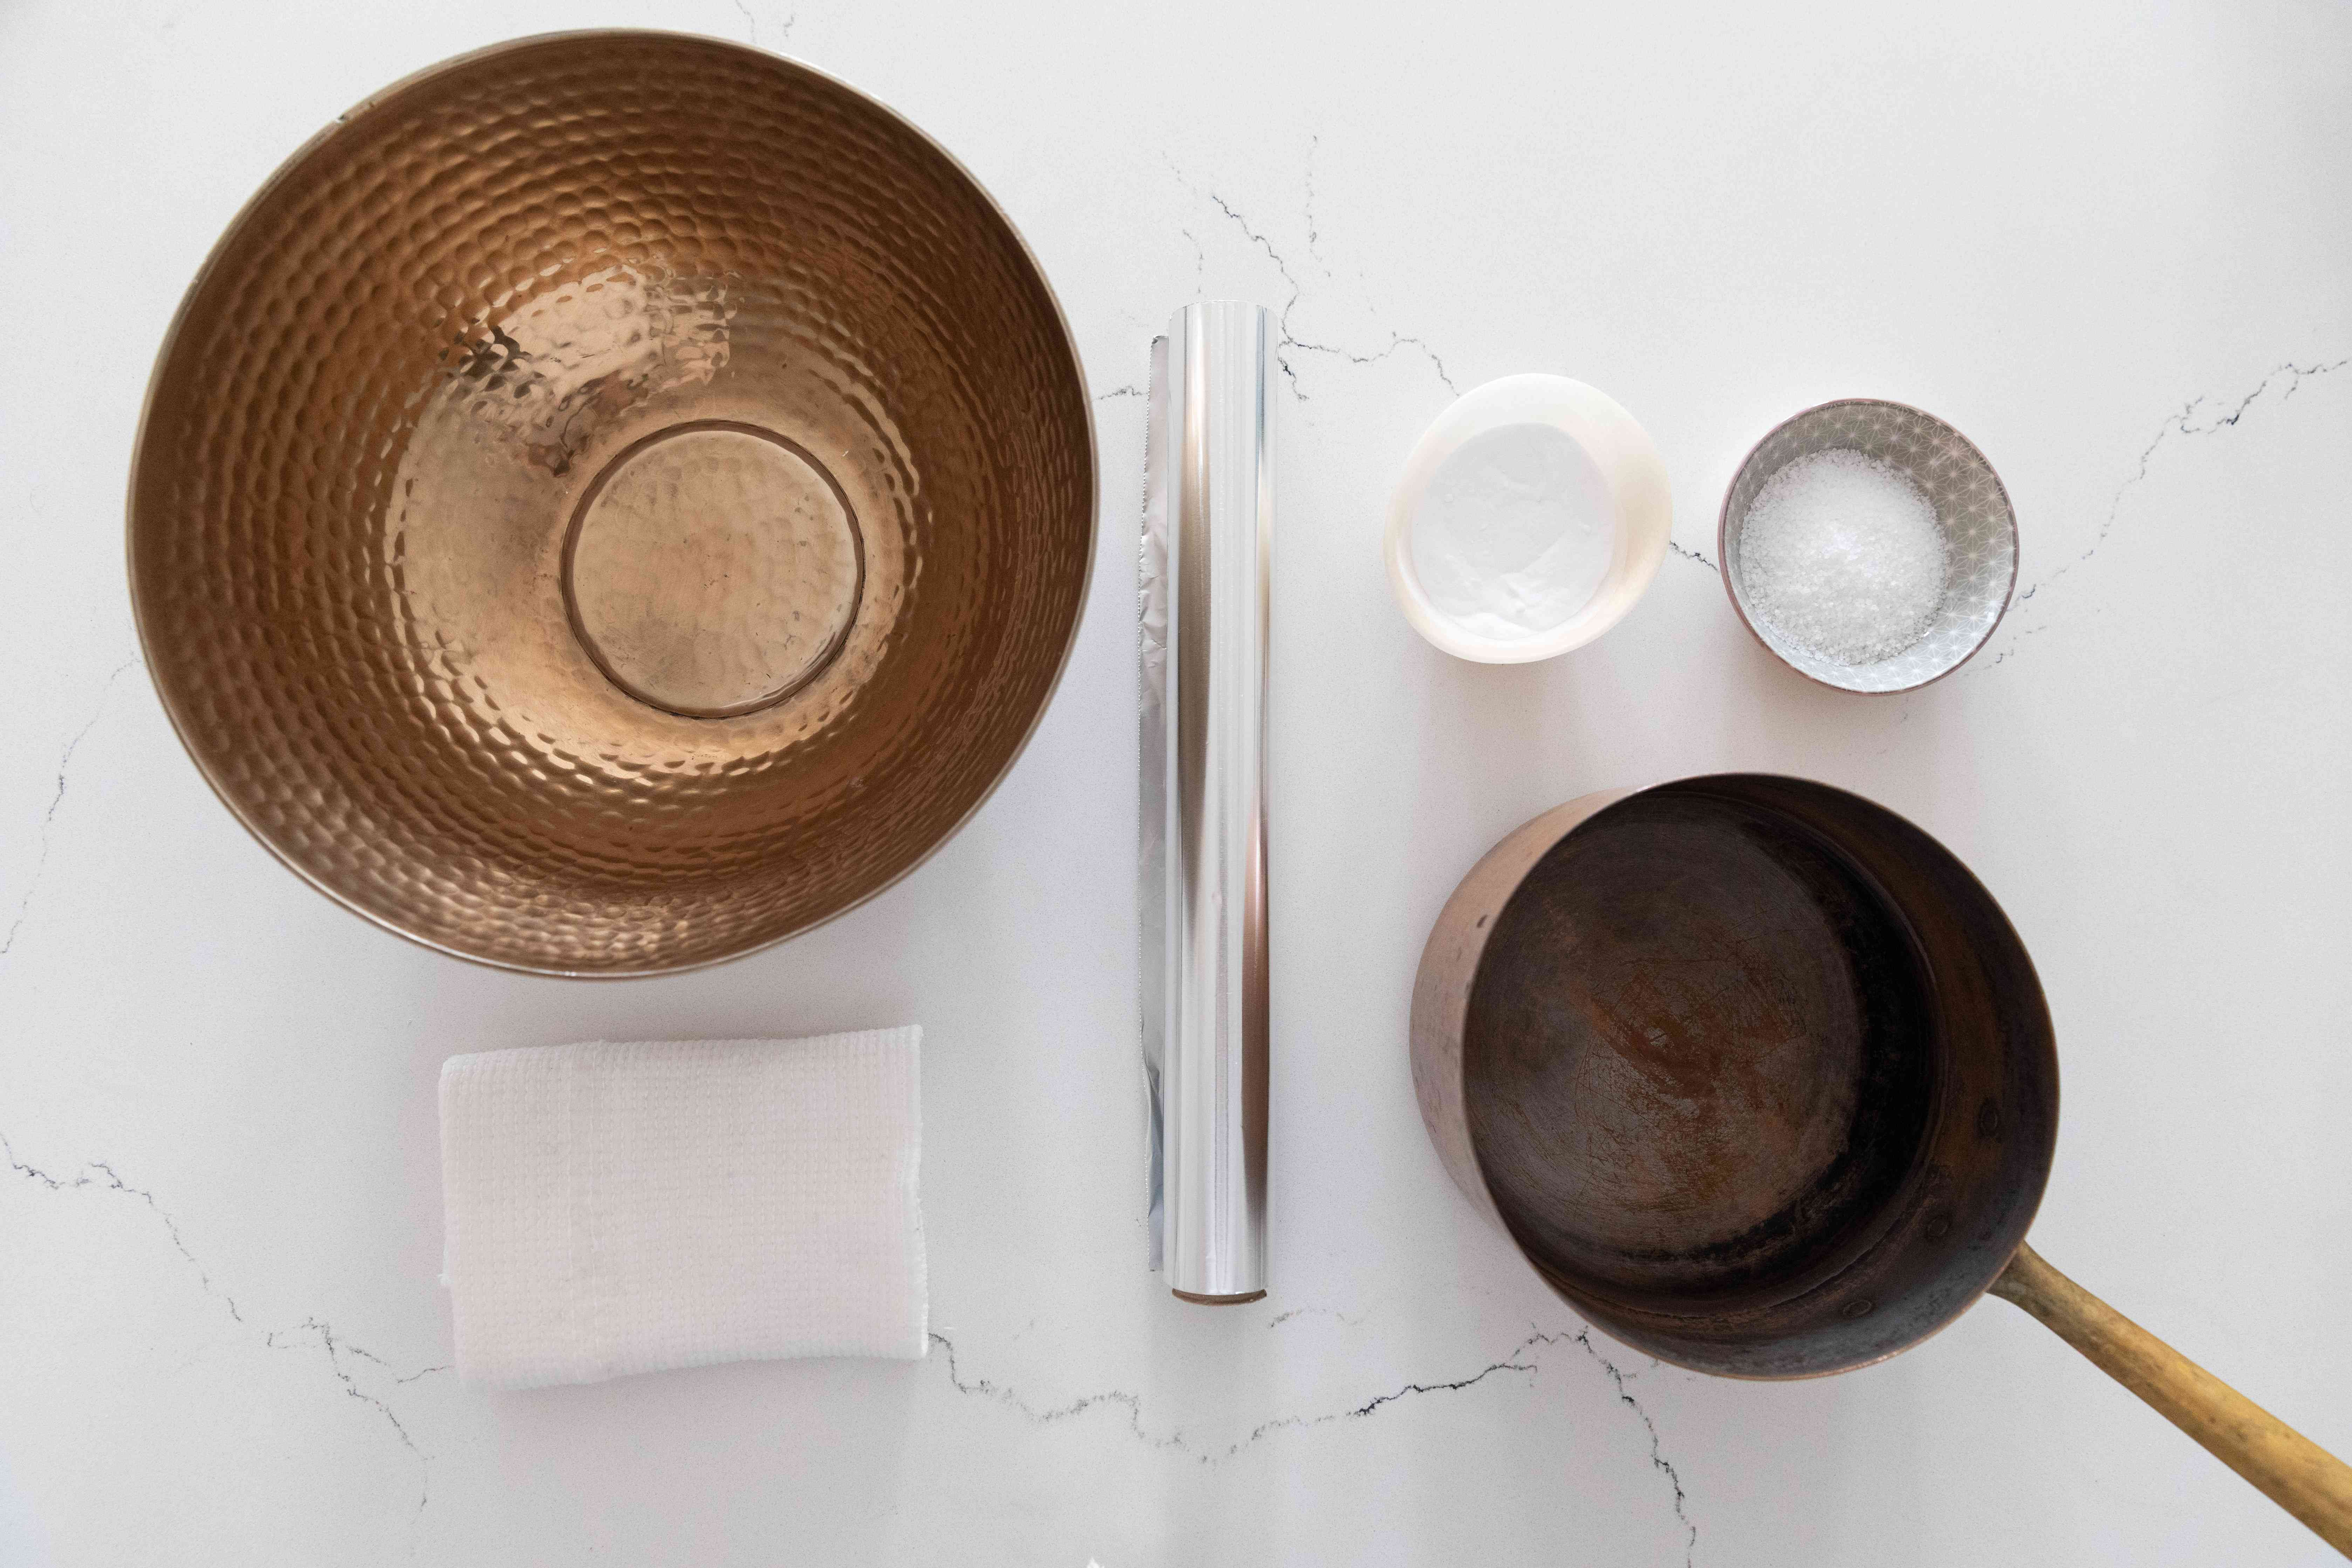 materials for cleaning tarnished silver